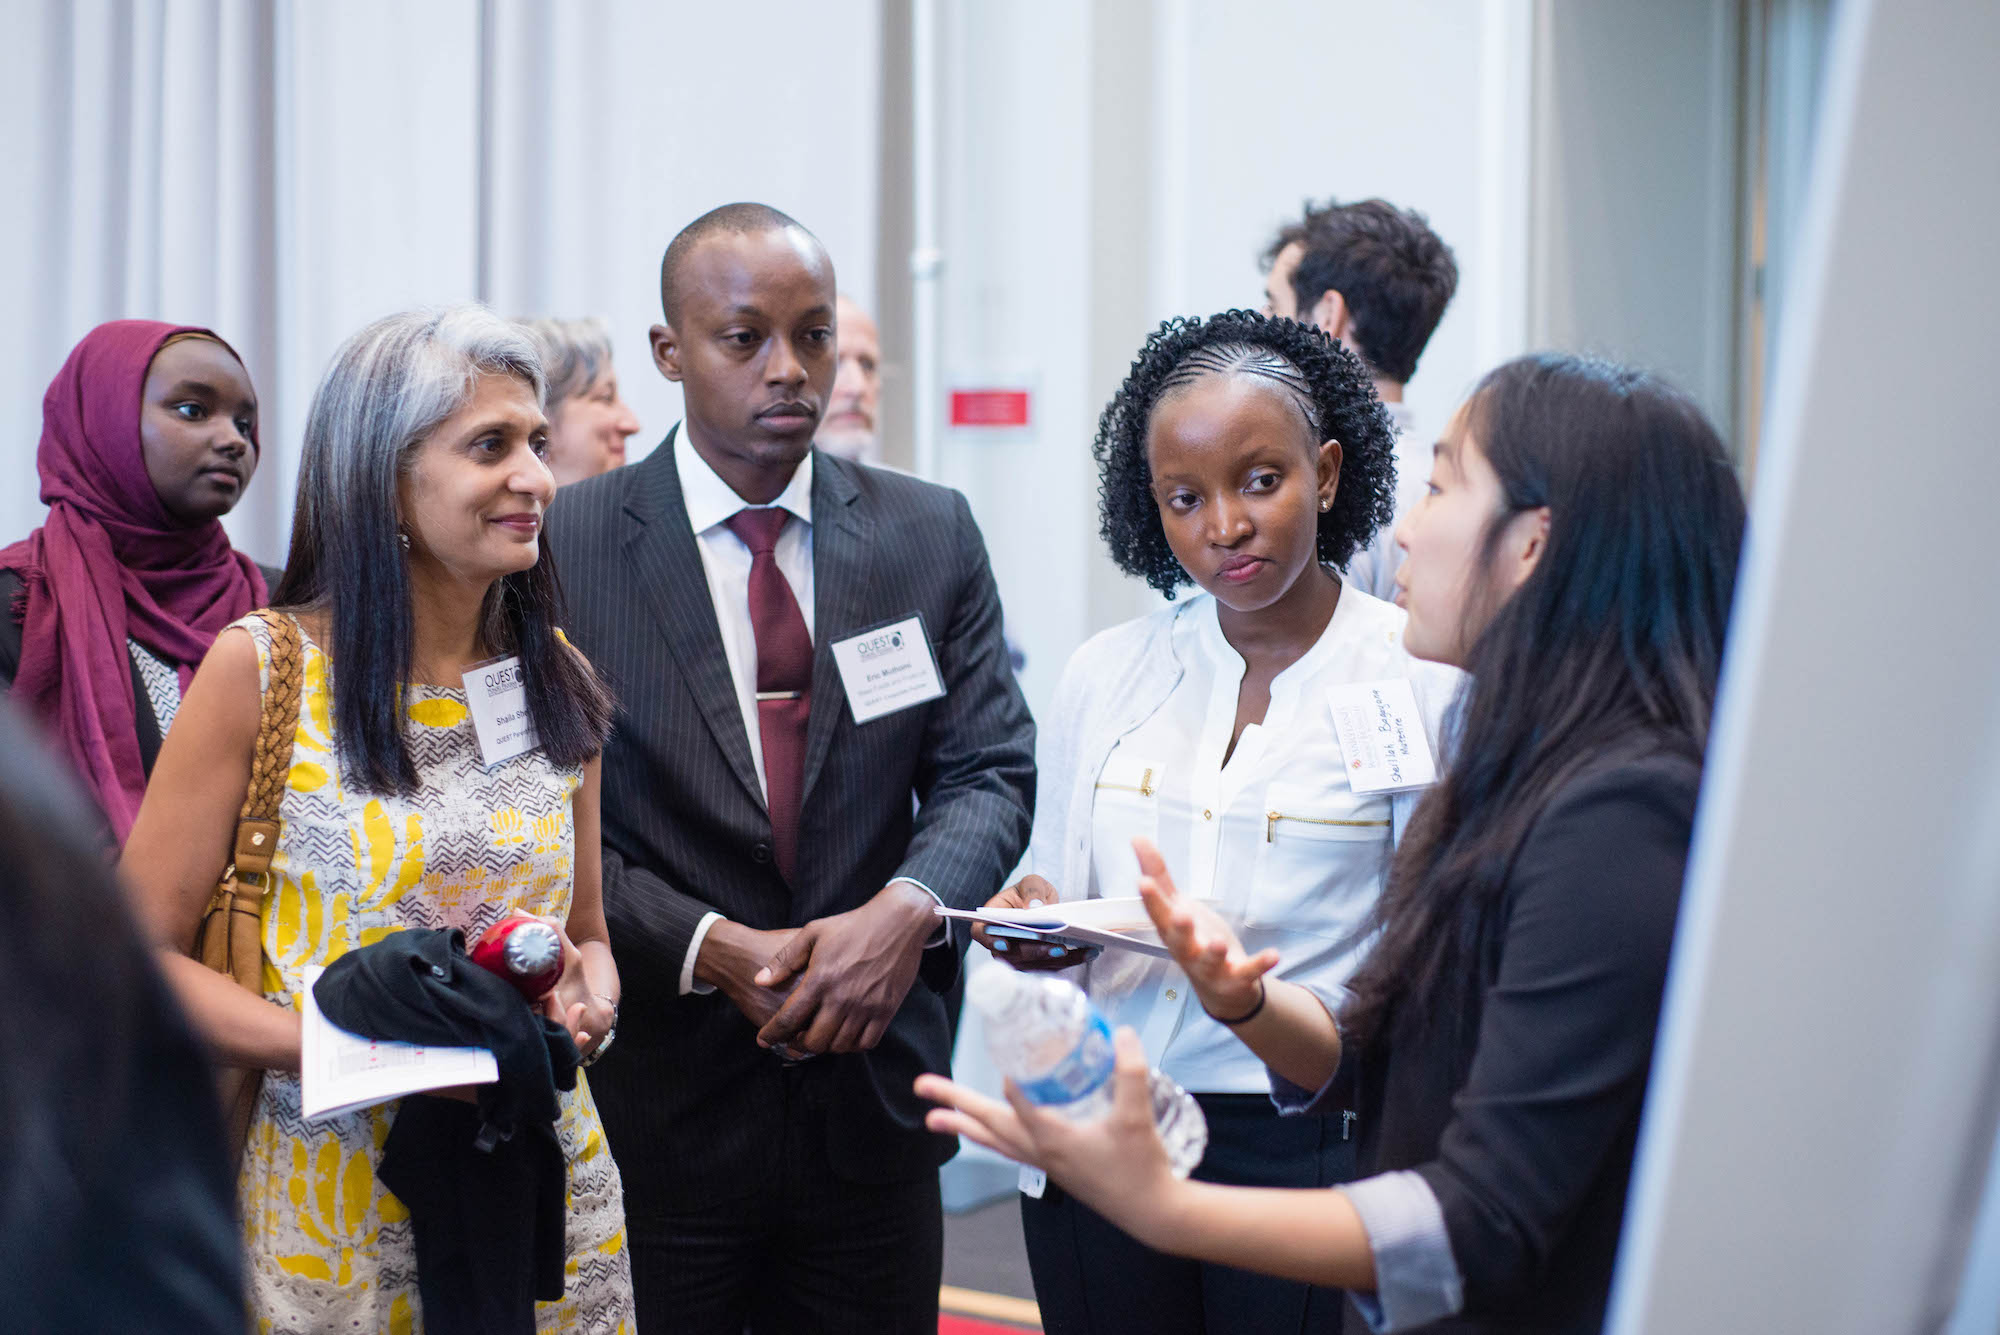 YALI Fellows Eric Muthomi and Sheillah Mutetire (both center) engaged with university faculty and students during the QUEST reception.